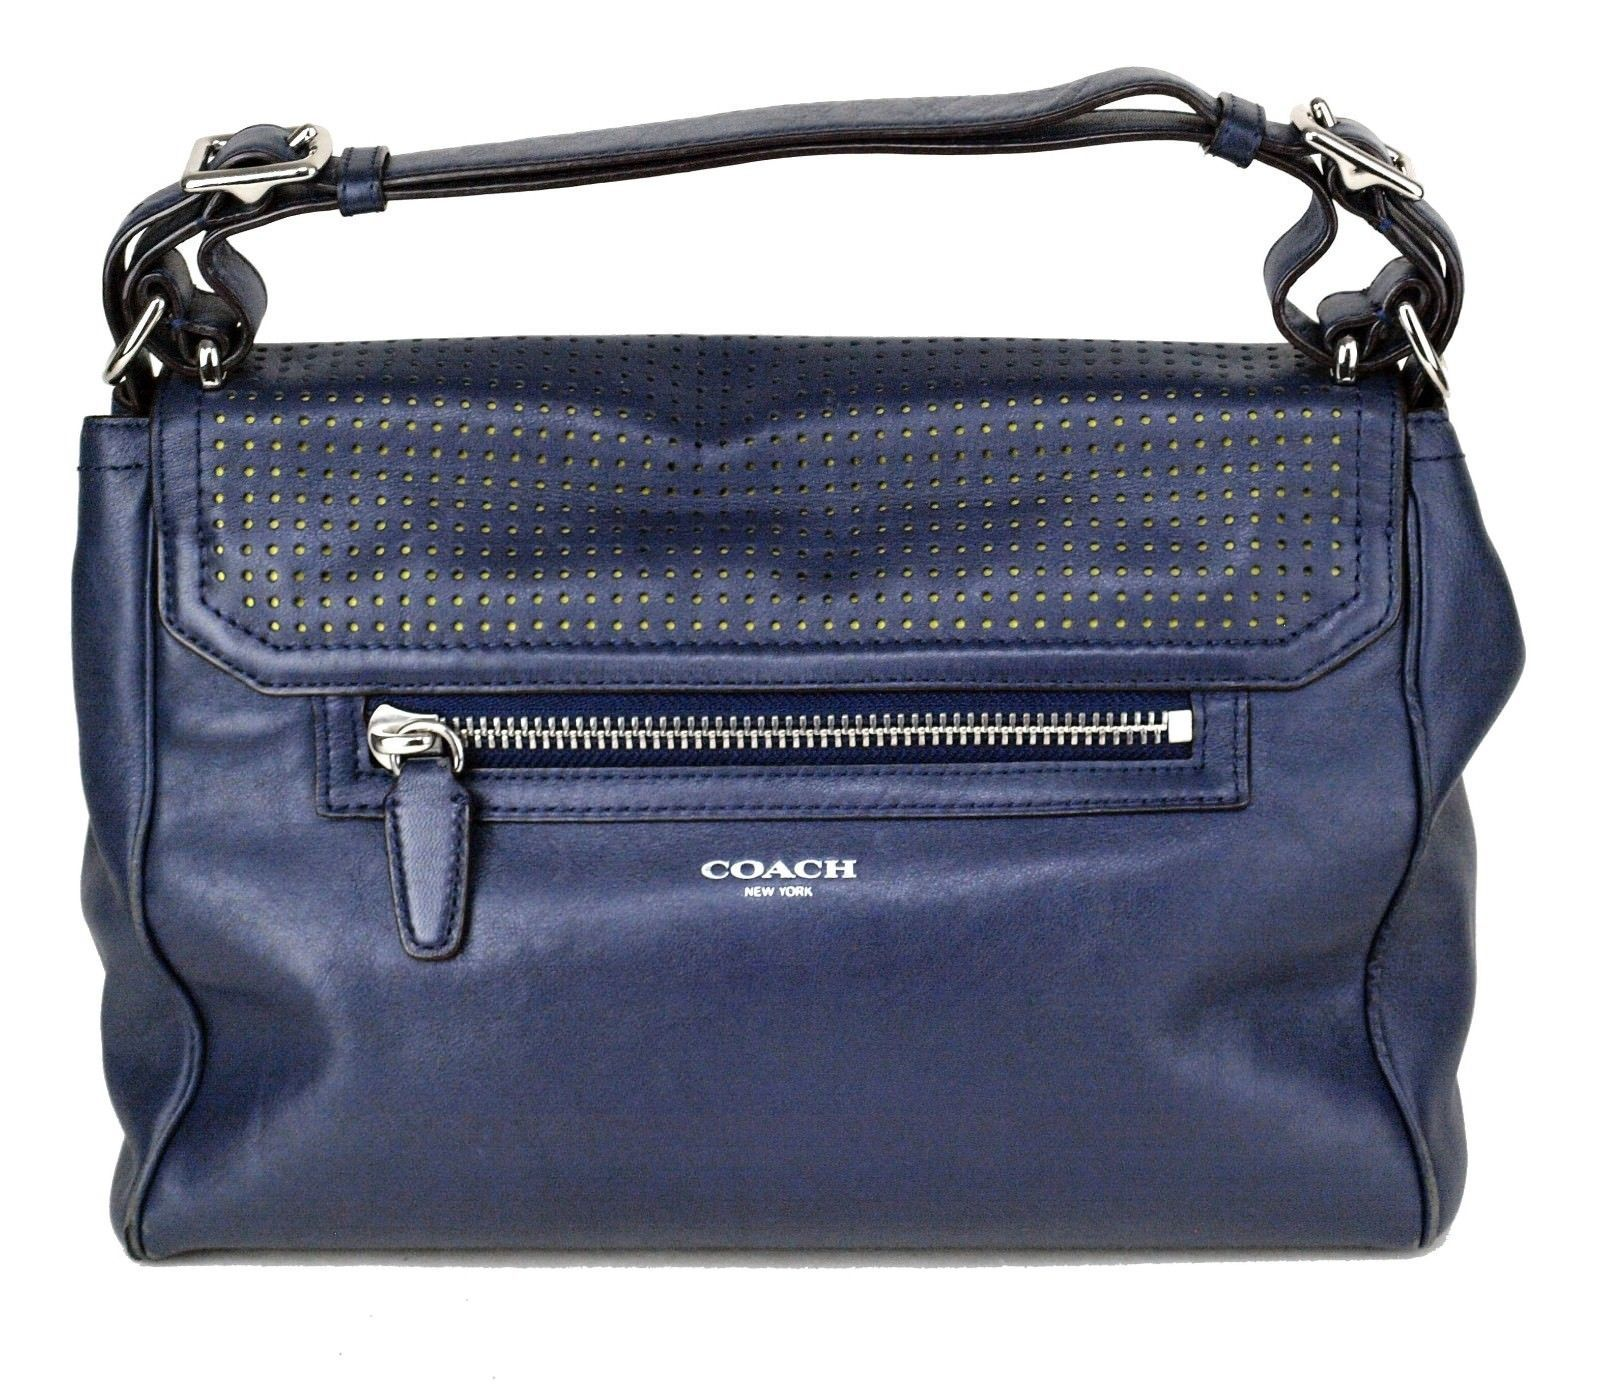 eb6d1565cb6b 100% Authentic COACH Legacy Perforated Leather Romy Navy Hand Bag Used